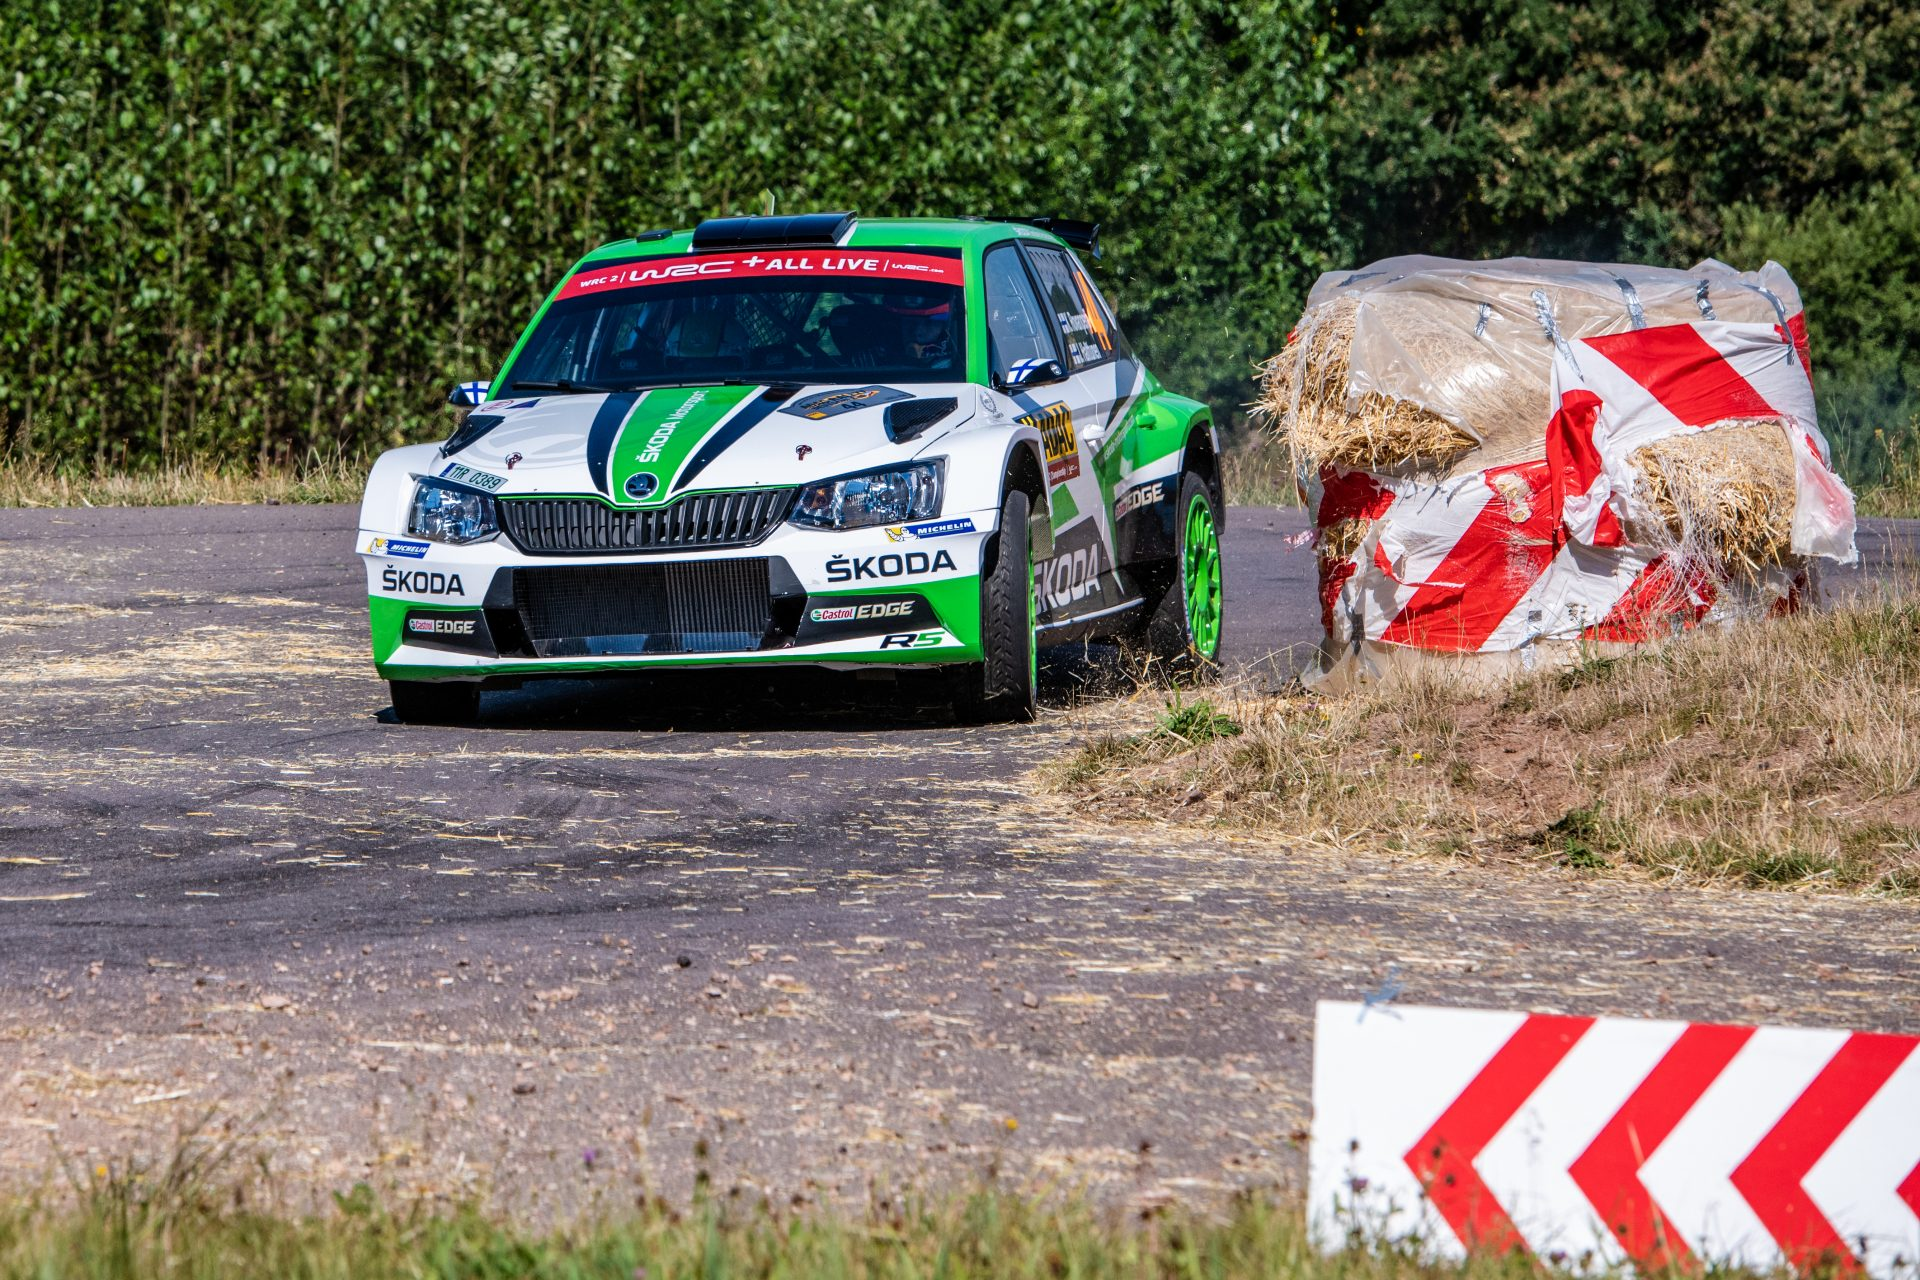 Rally Deutschland 2018: Latest News and Results [Updated Regularly]